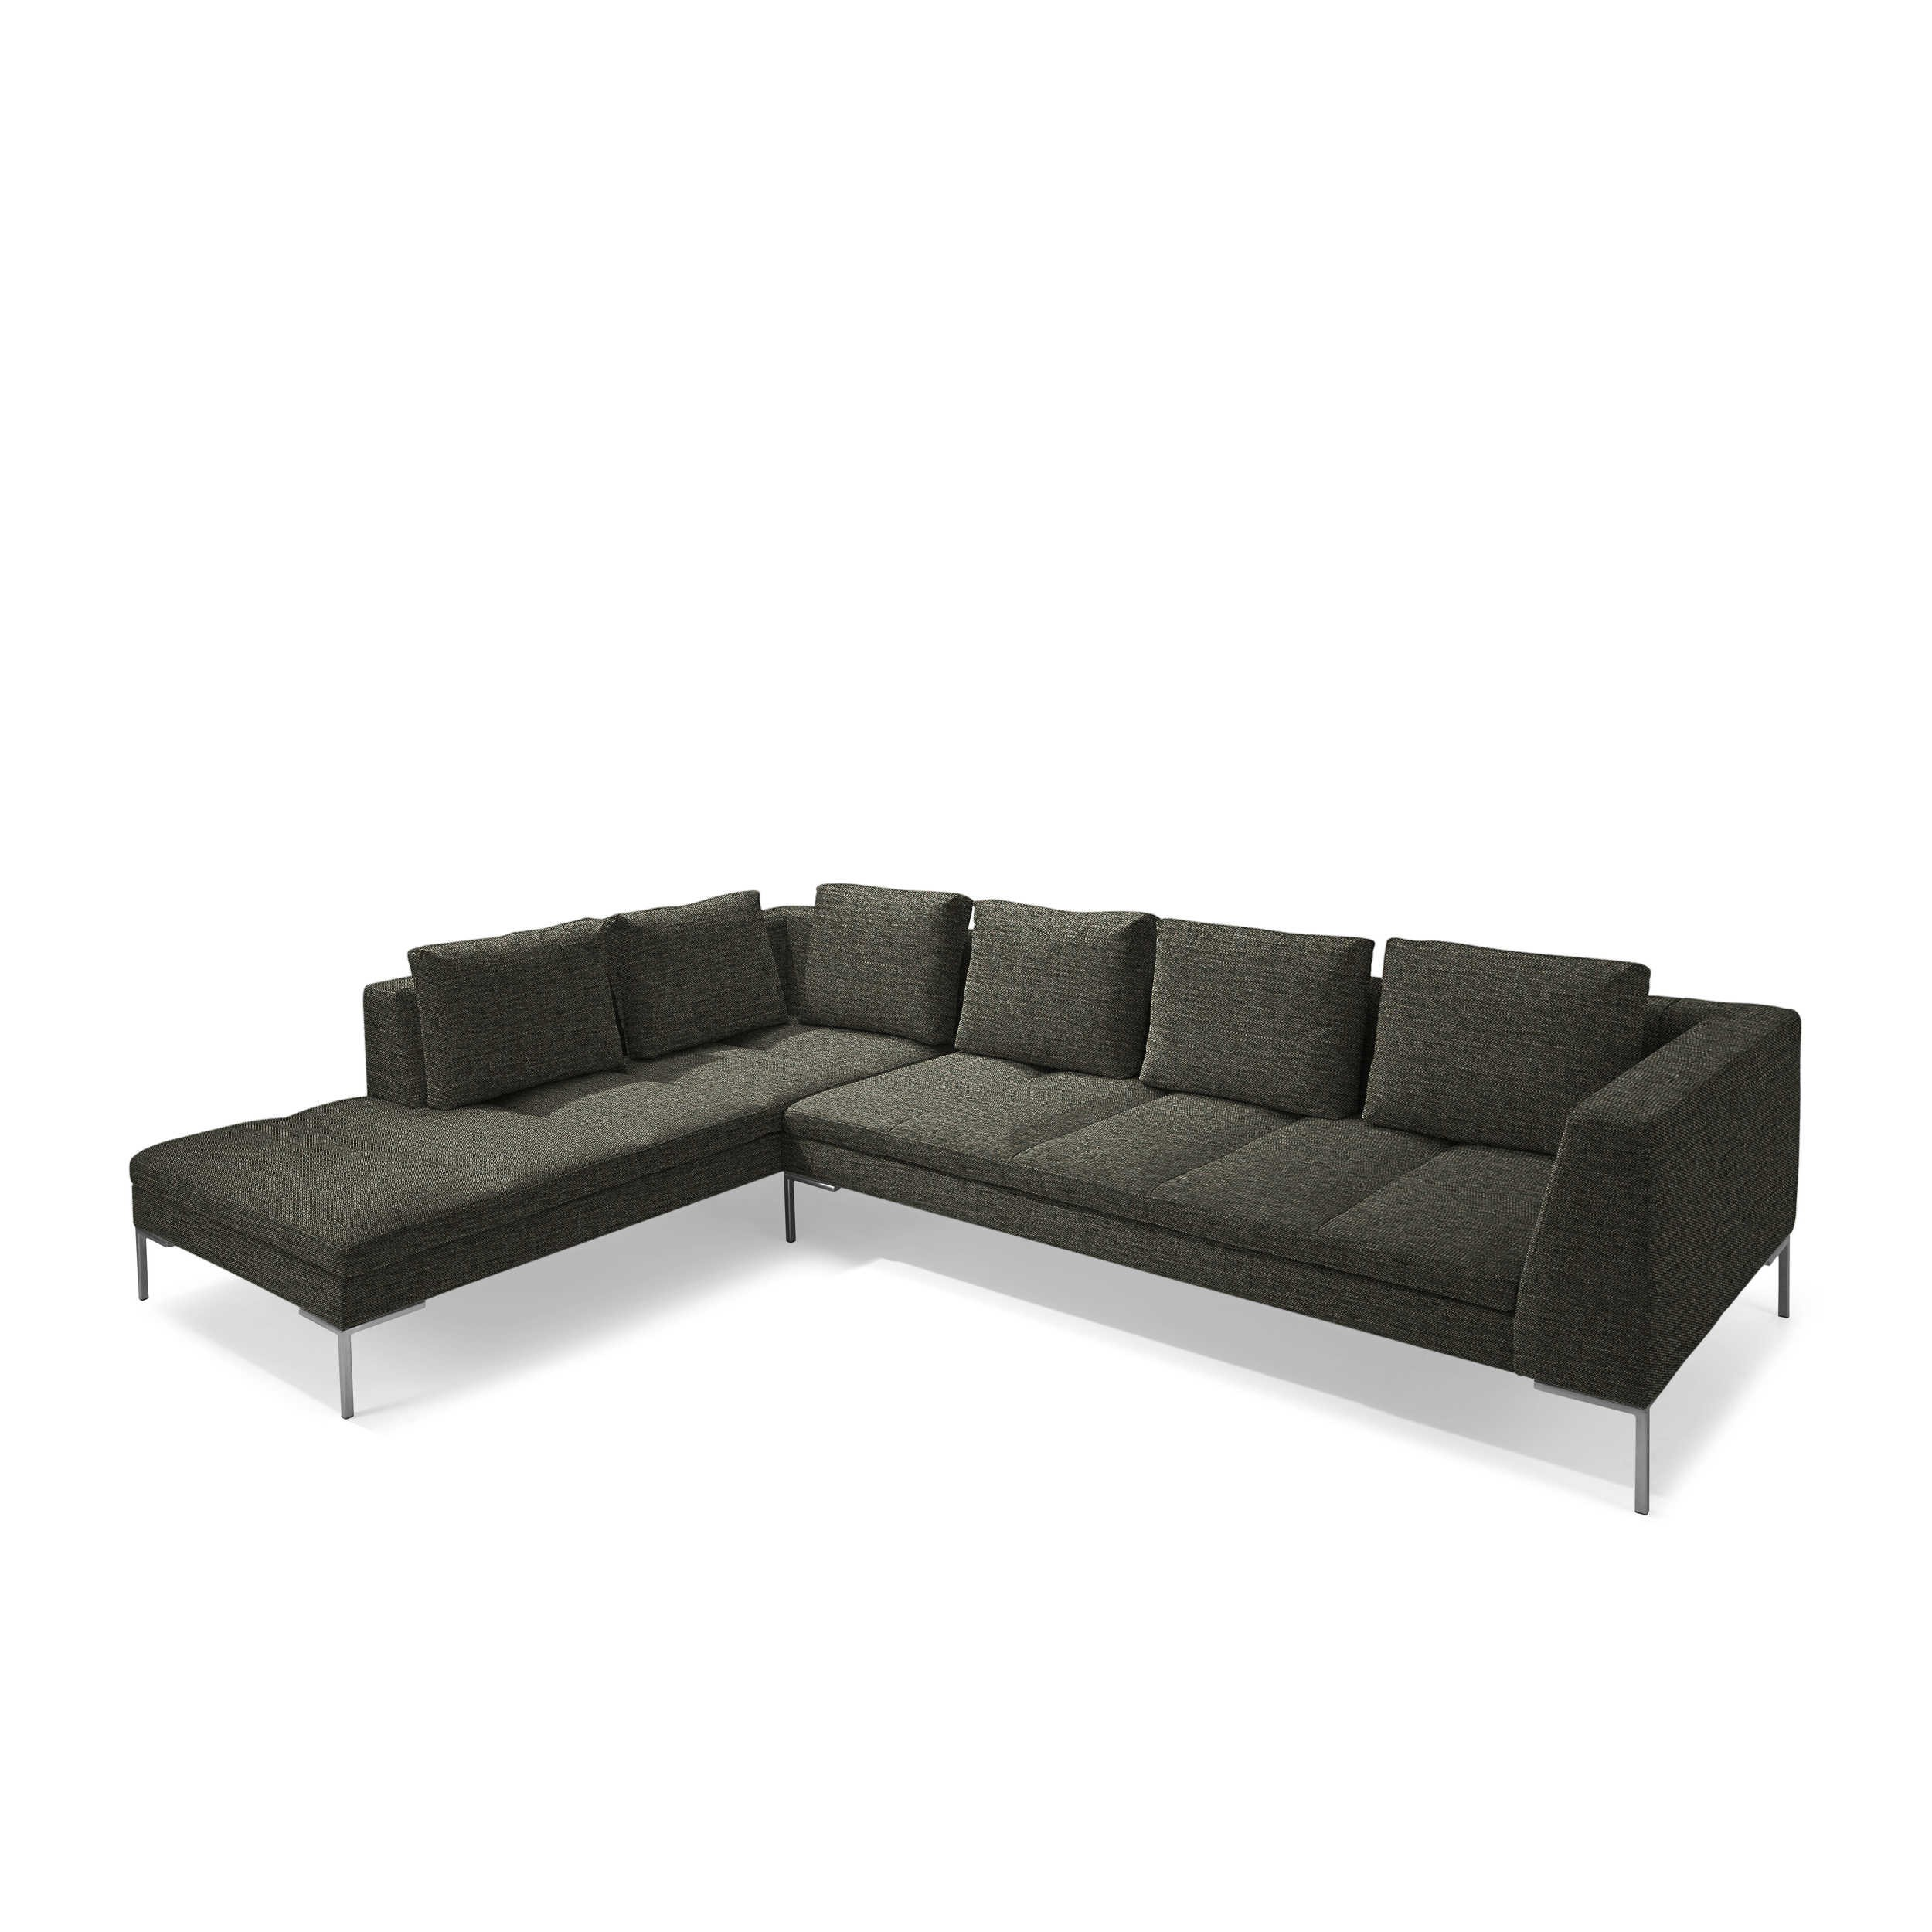 theca ecksofa mondovi schwarz stoff online kaufen bei woonio. Black Bedroom Furniture Sets. Home Design Ideas